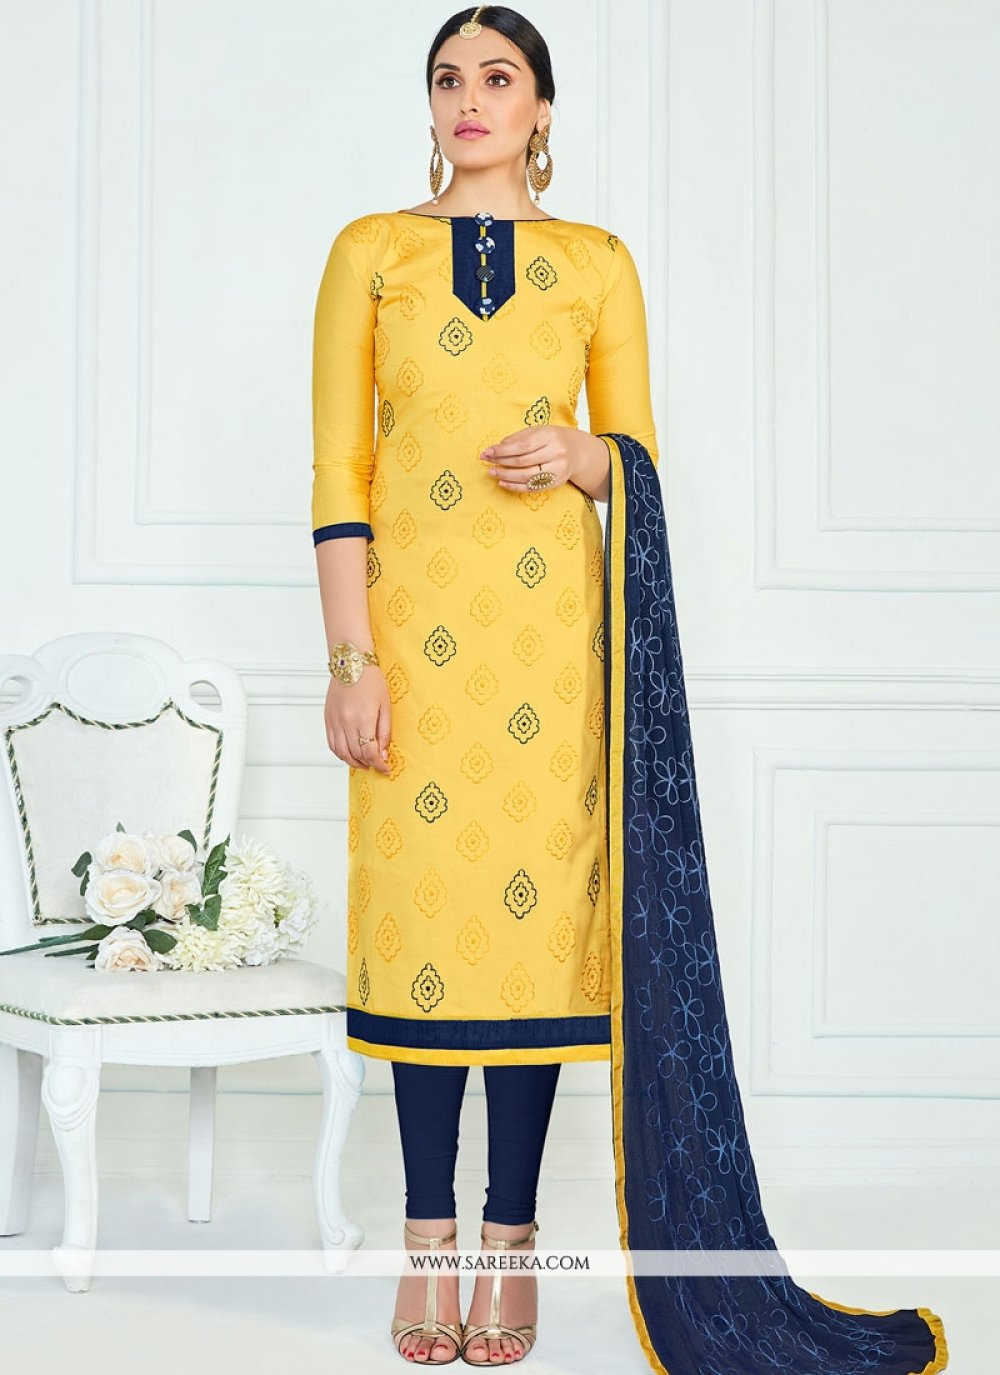 Cotton   Navy Blue and Yellow Churidar Suit